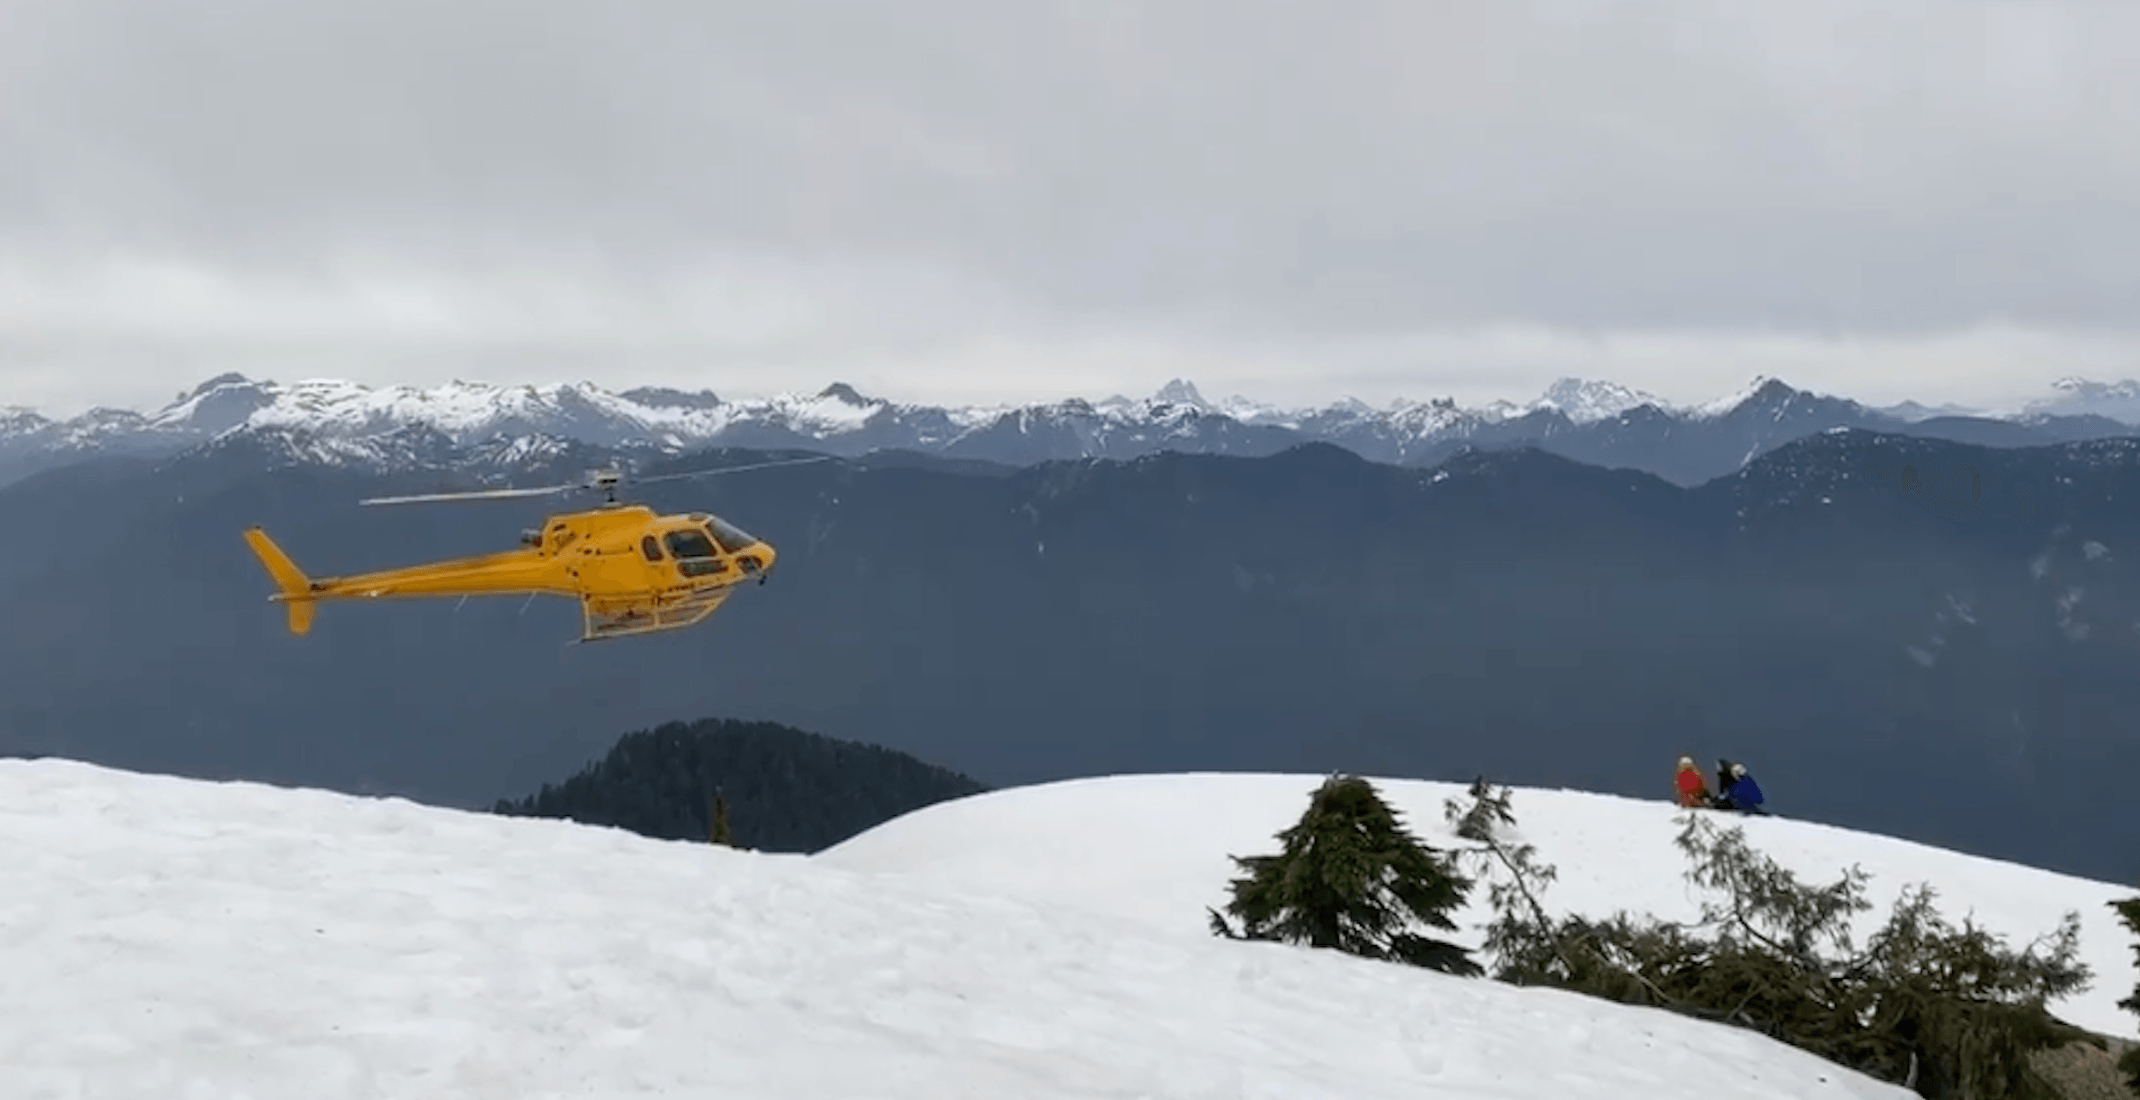 North Shore Rescue responding to stranded hiker on Mount Seymour